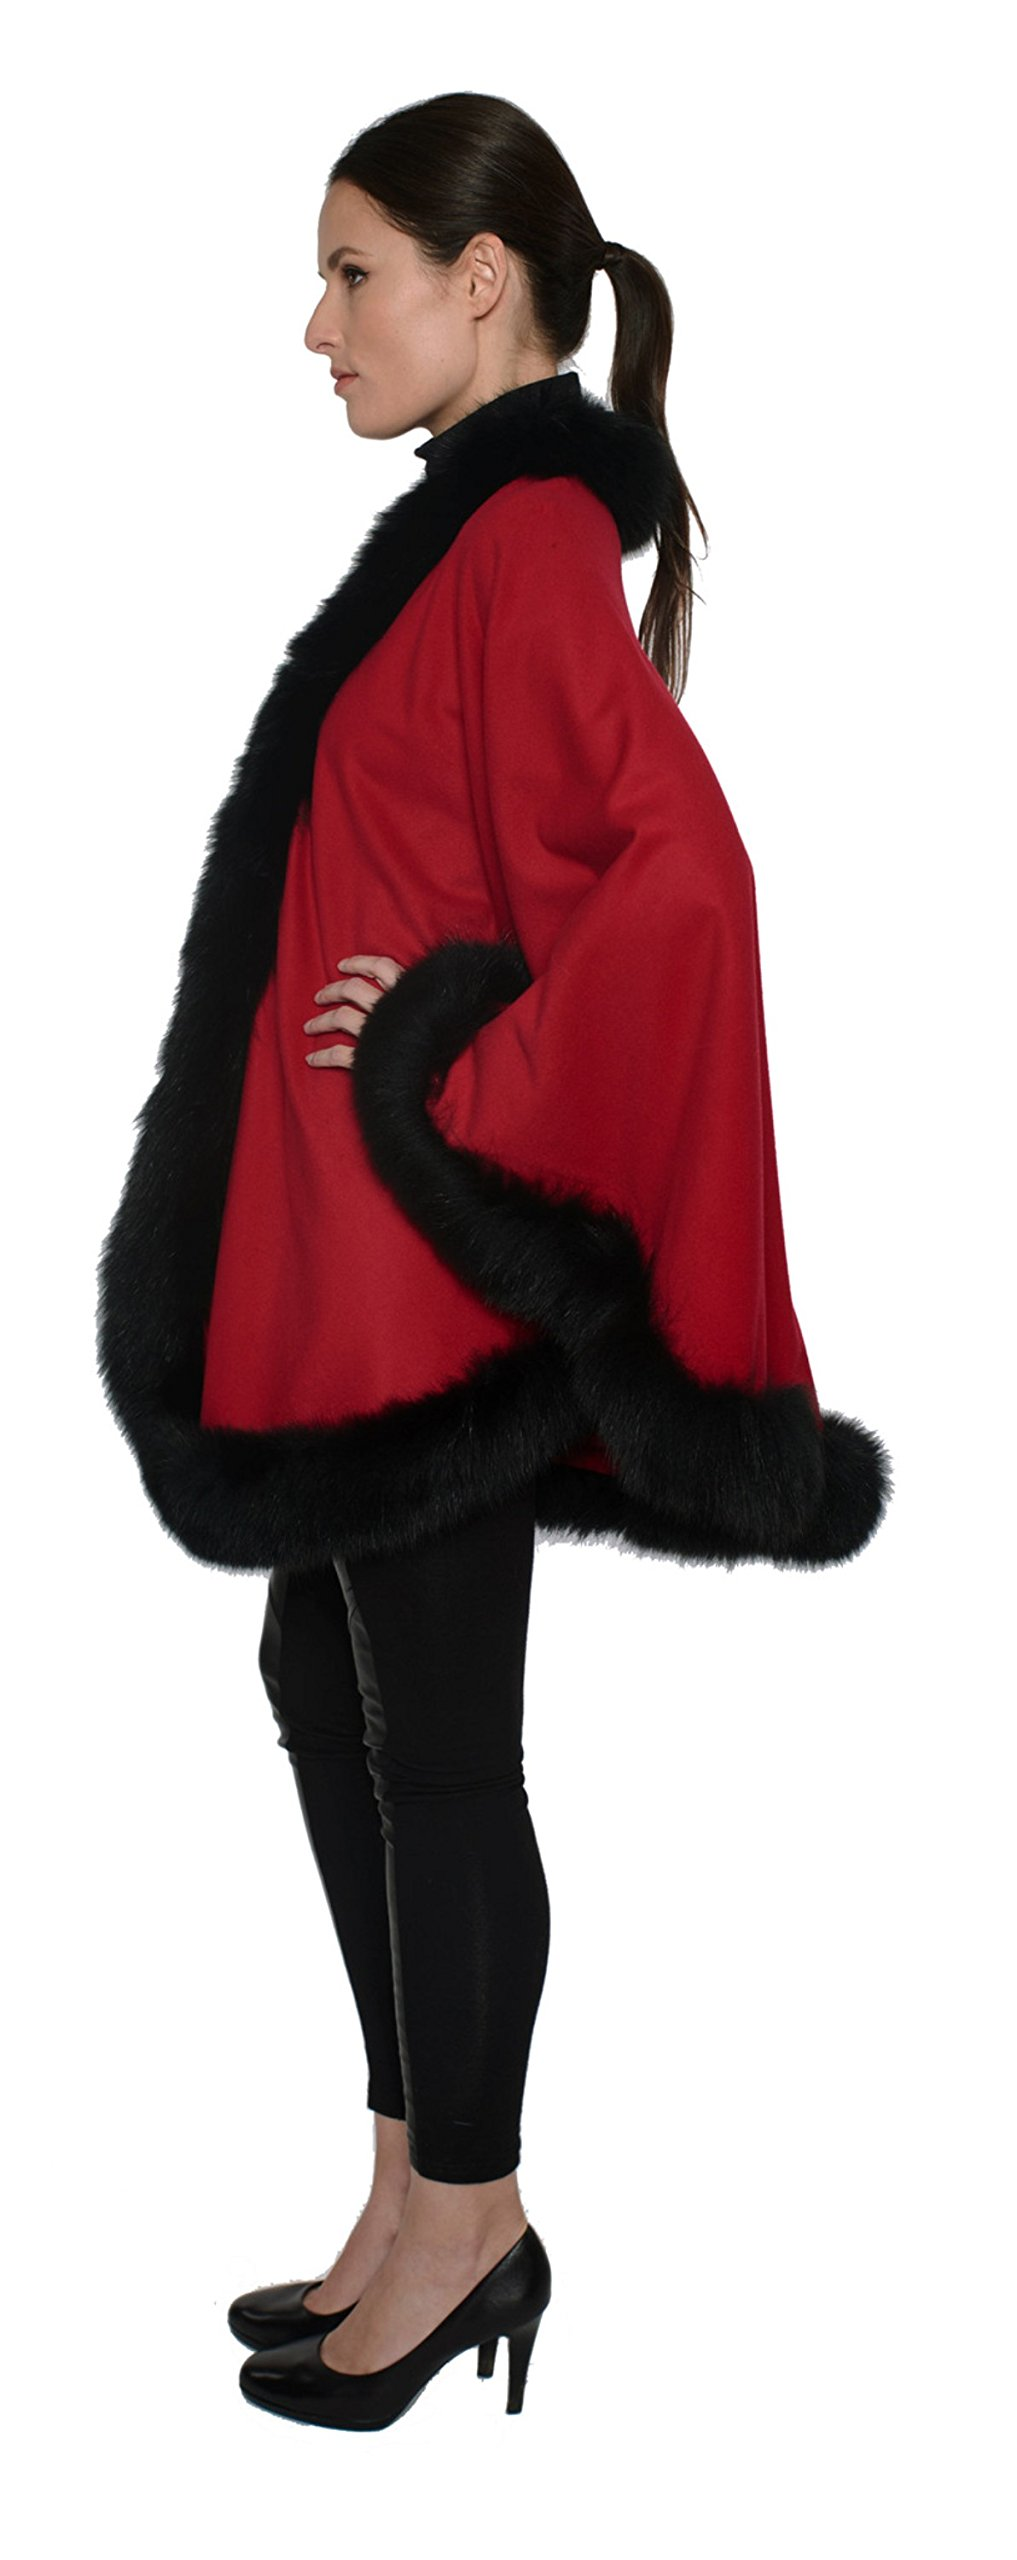 Cashmere Pashmina Group: Cashmere Cape with genuine Fox Fur Trim all around (Lipstick Red/ Black) by Cashmere Pashmina Group (Image #2)